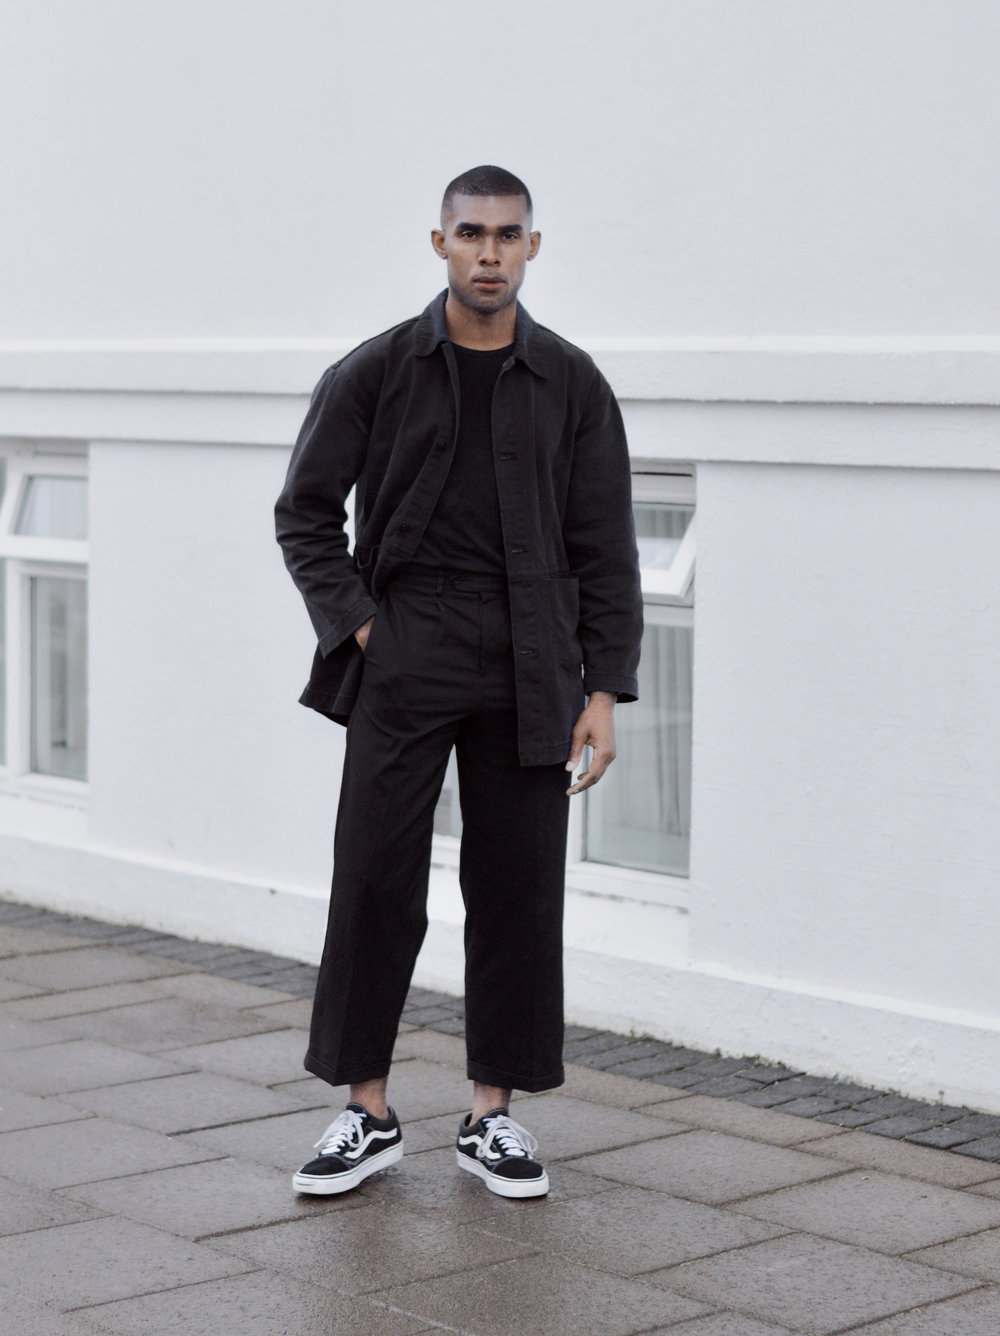 The-Look-Principle-Oversized-Worker-Style-In-Reykjavik-7.jpg